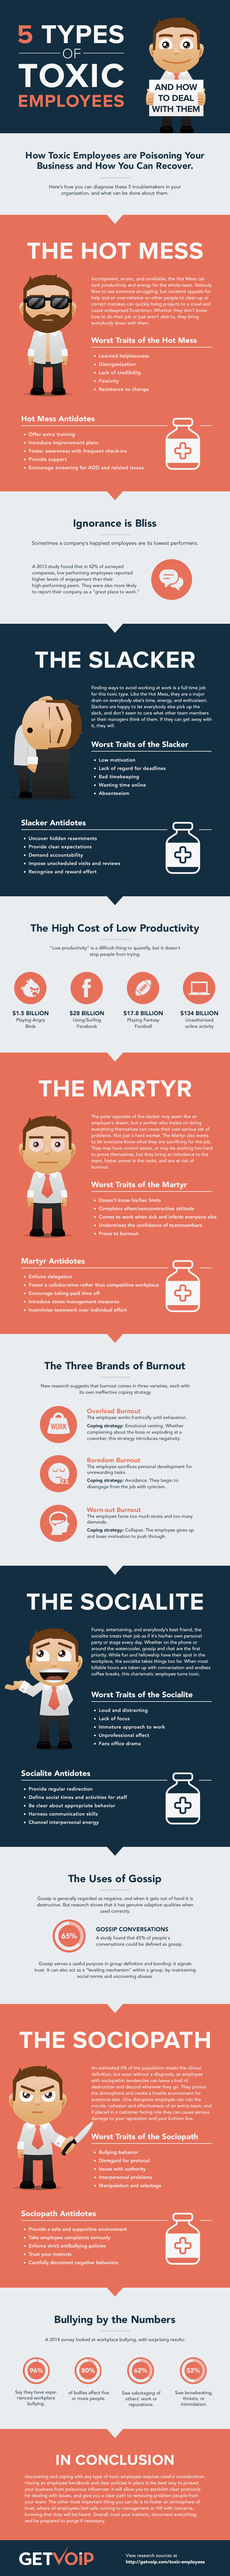 Toxic Employees Infographic